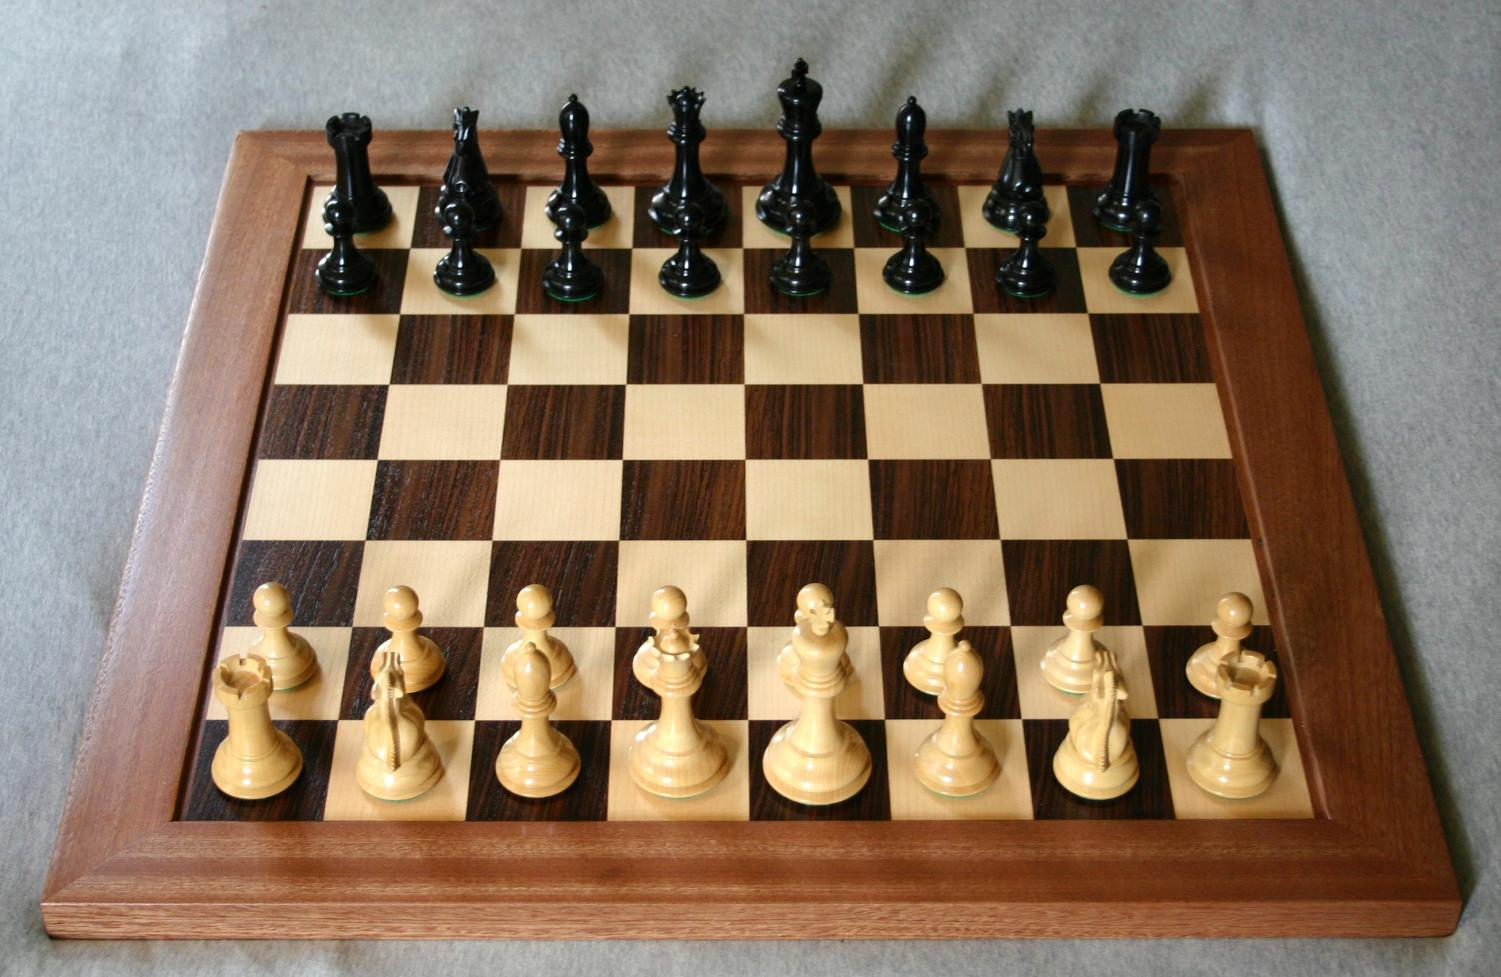 Chess is considered a sport in the United States.